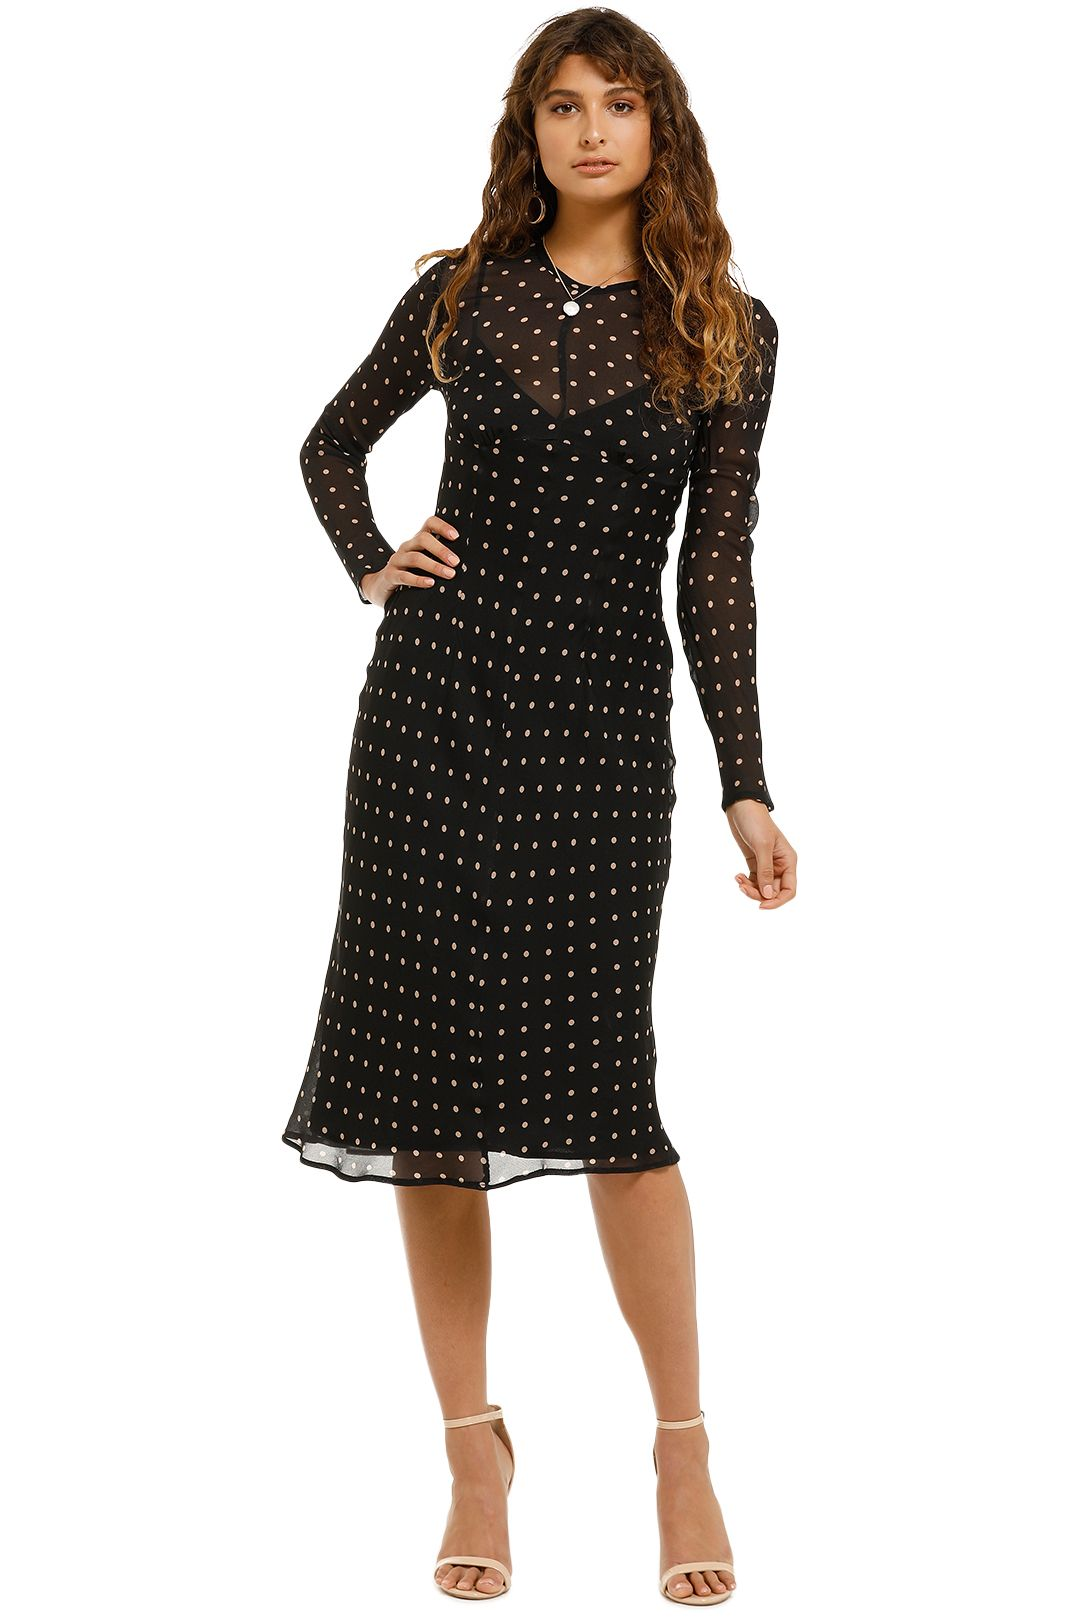 Kate-Sylvester-Maeve-Dress-Black-Front